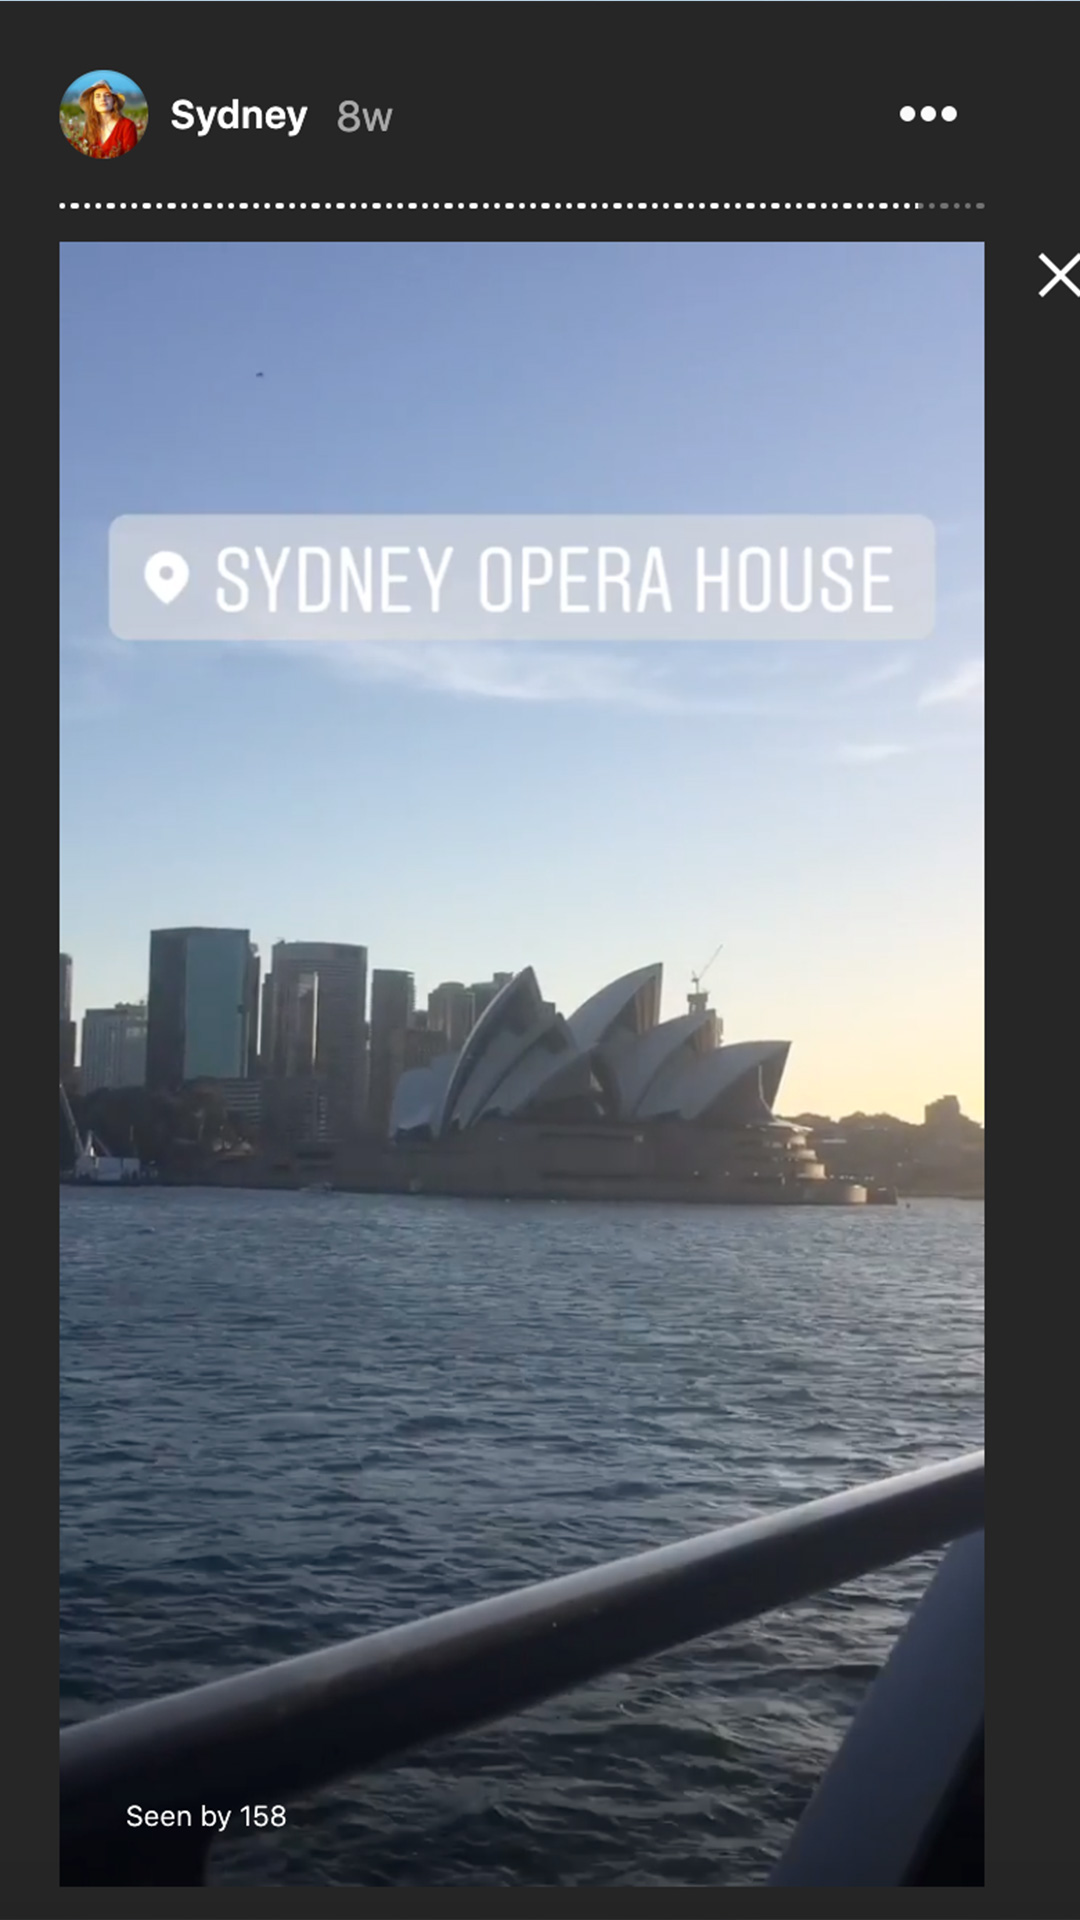 sydney opera house from a ferry in sydney harour